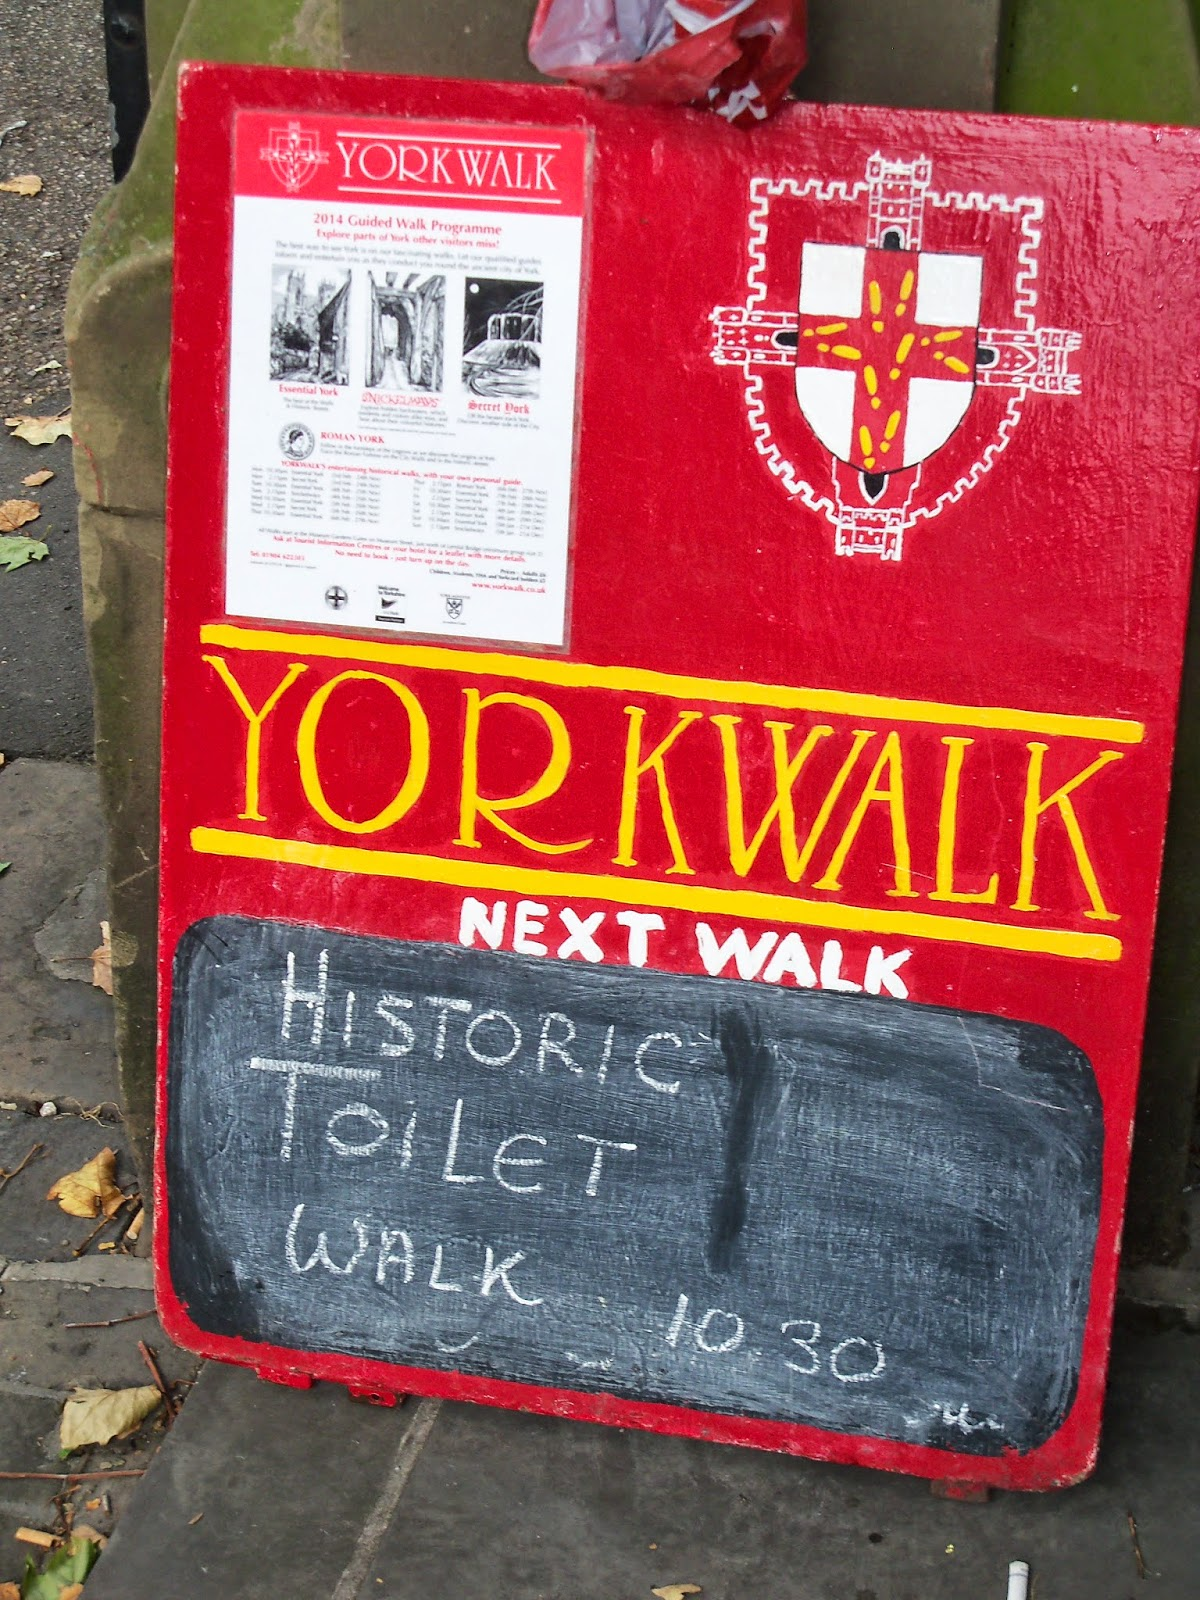 Doing Your Business: How Henry VIII Dissolved the Toilets